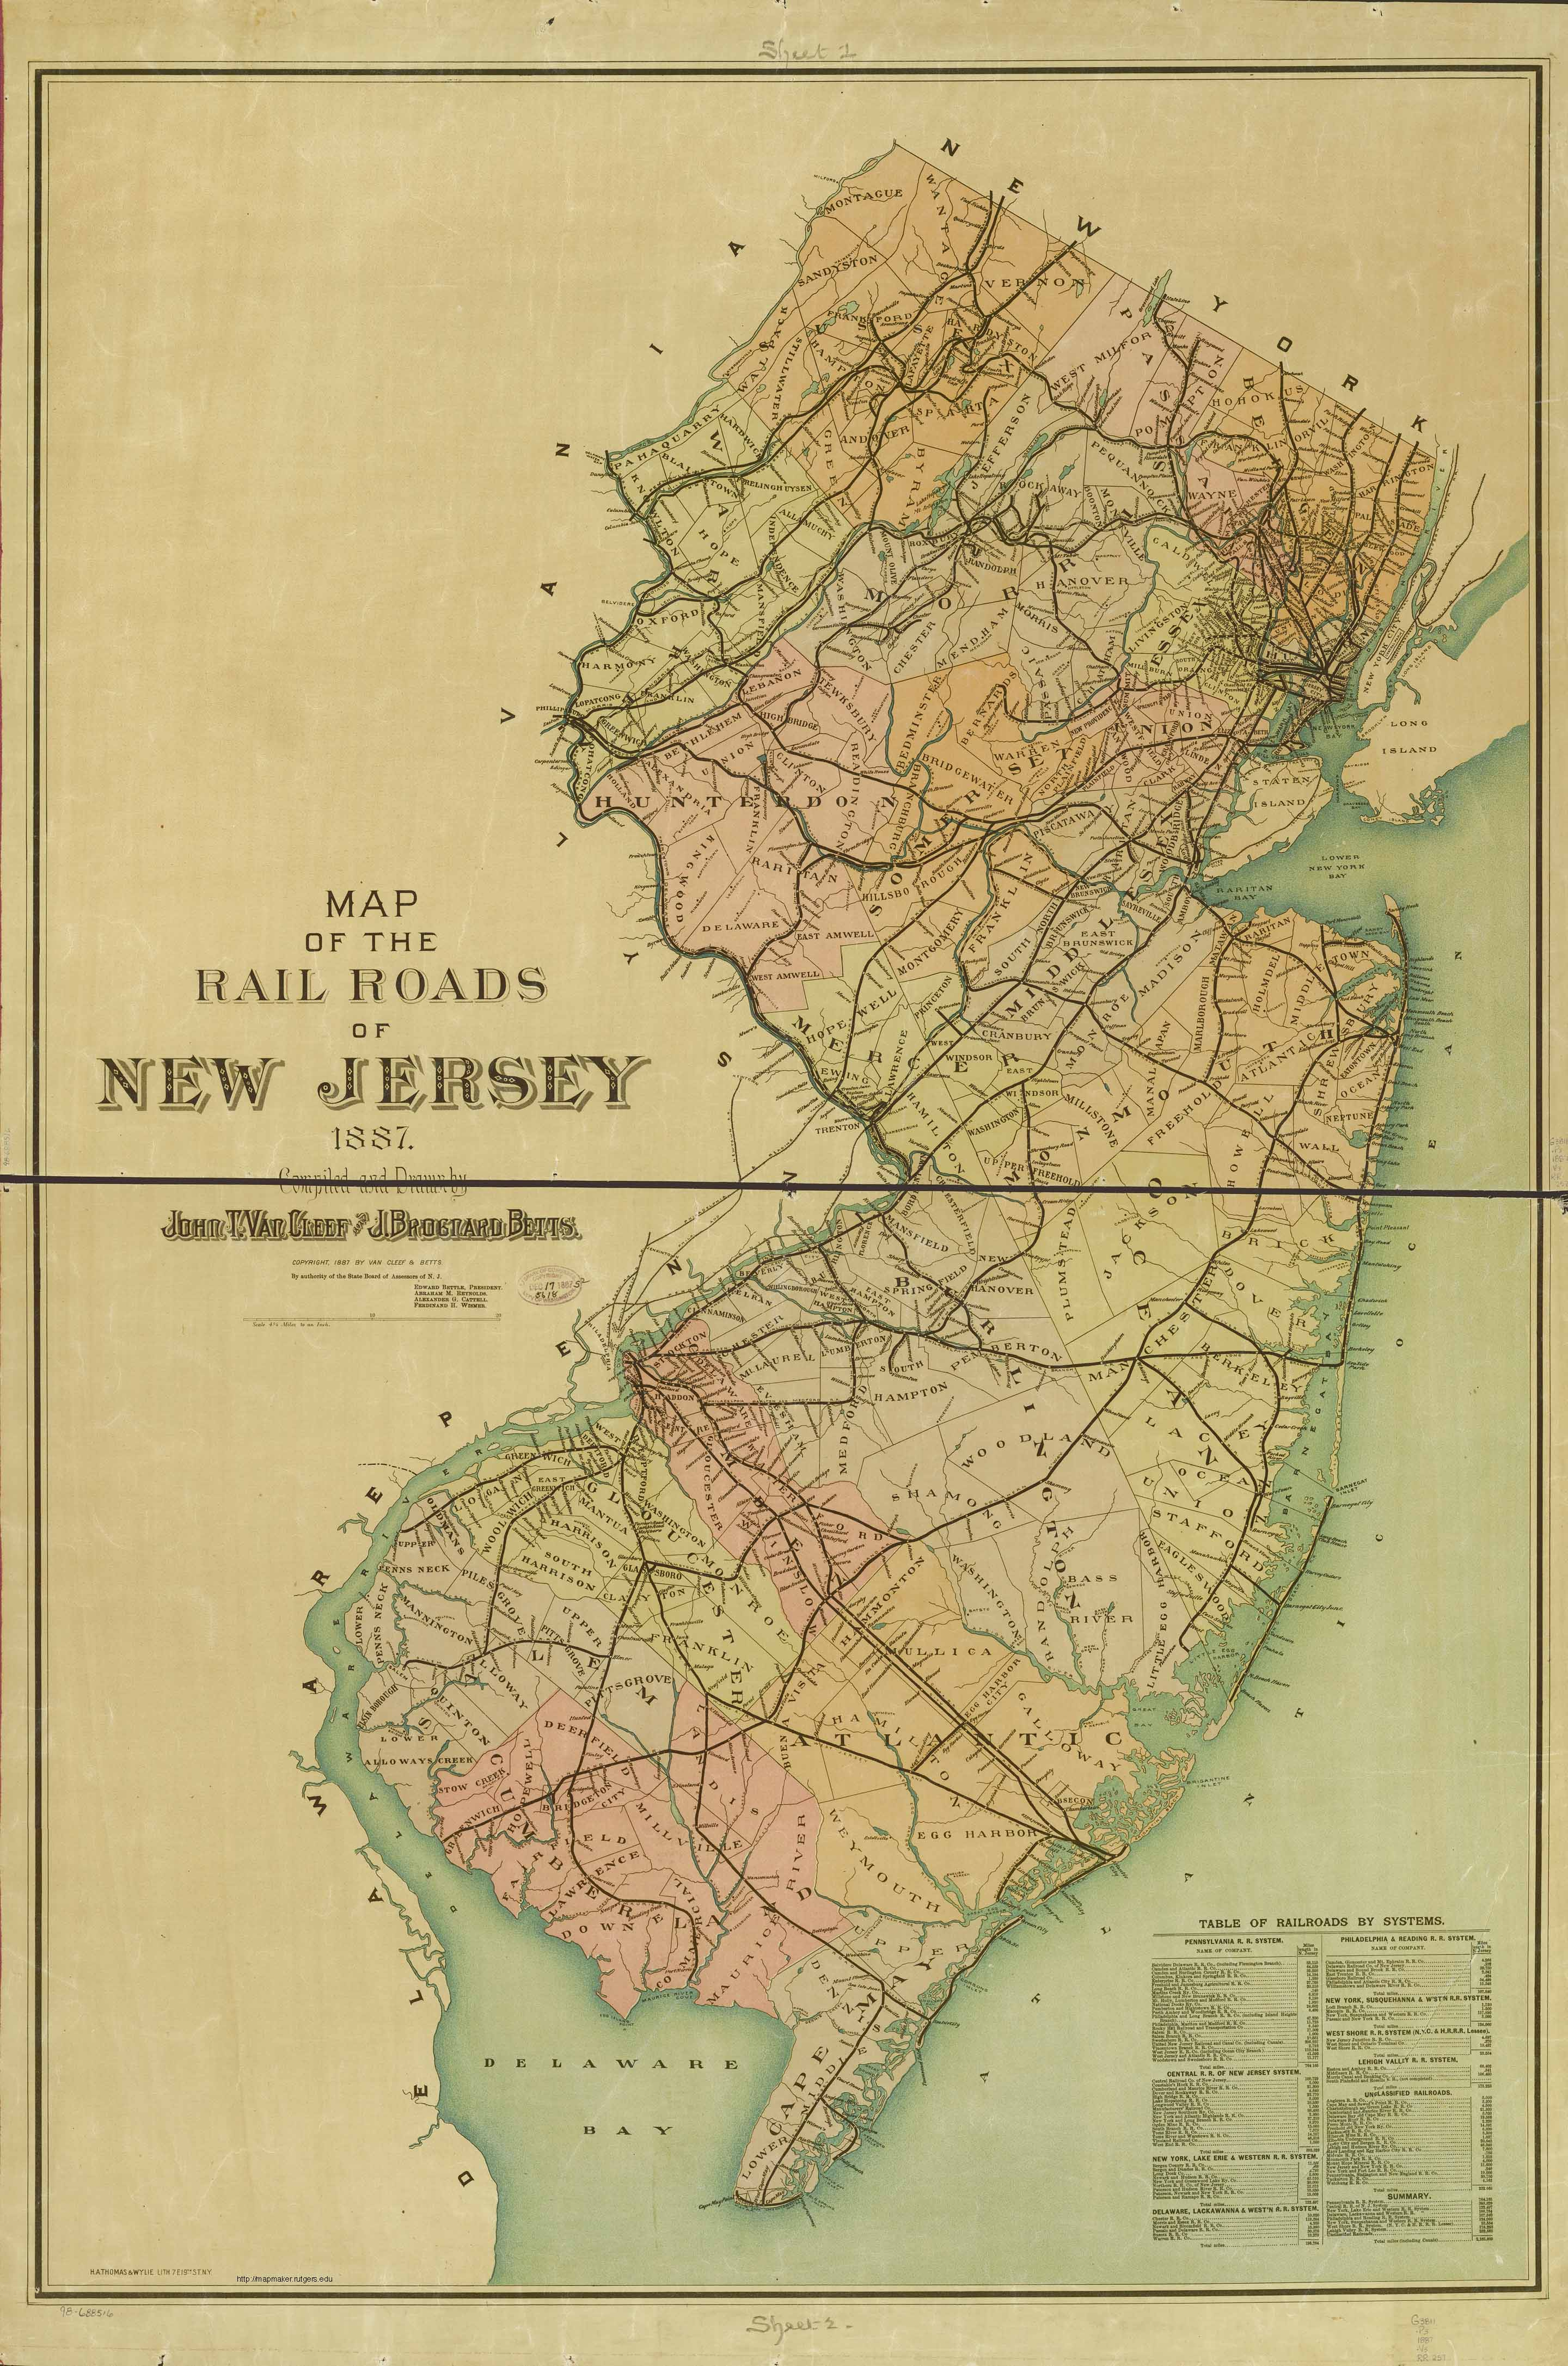 Historical New Jersey Railroad Maps - Maps of new jersey